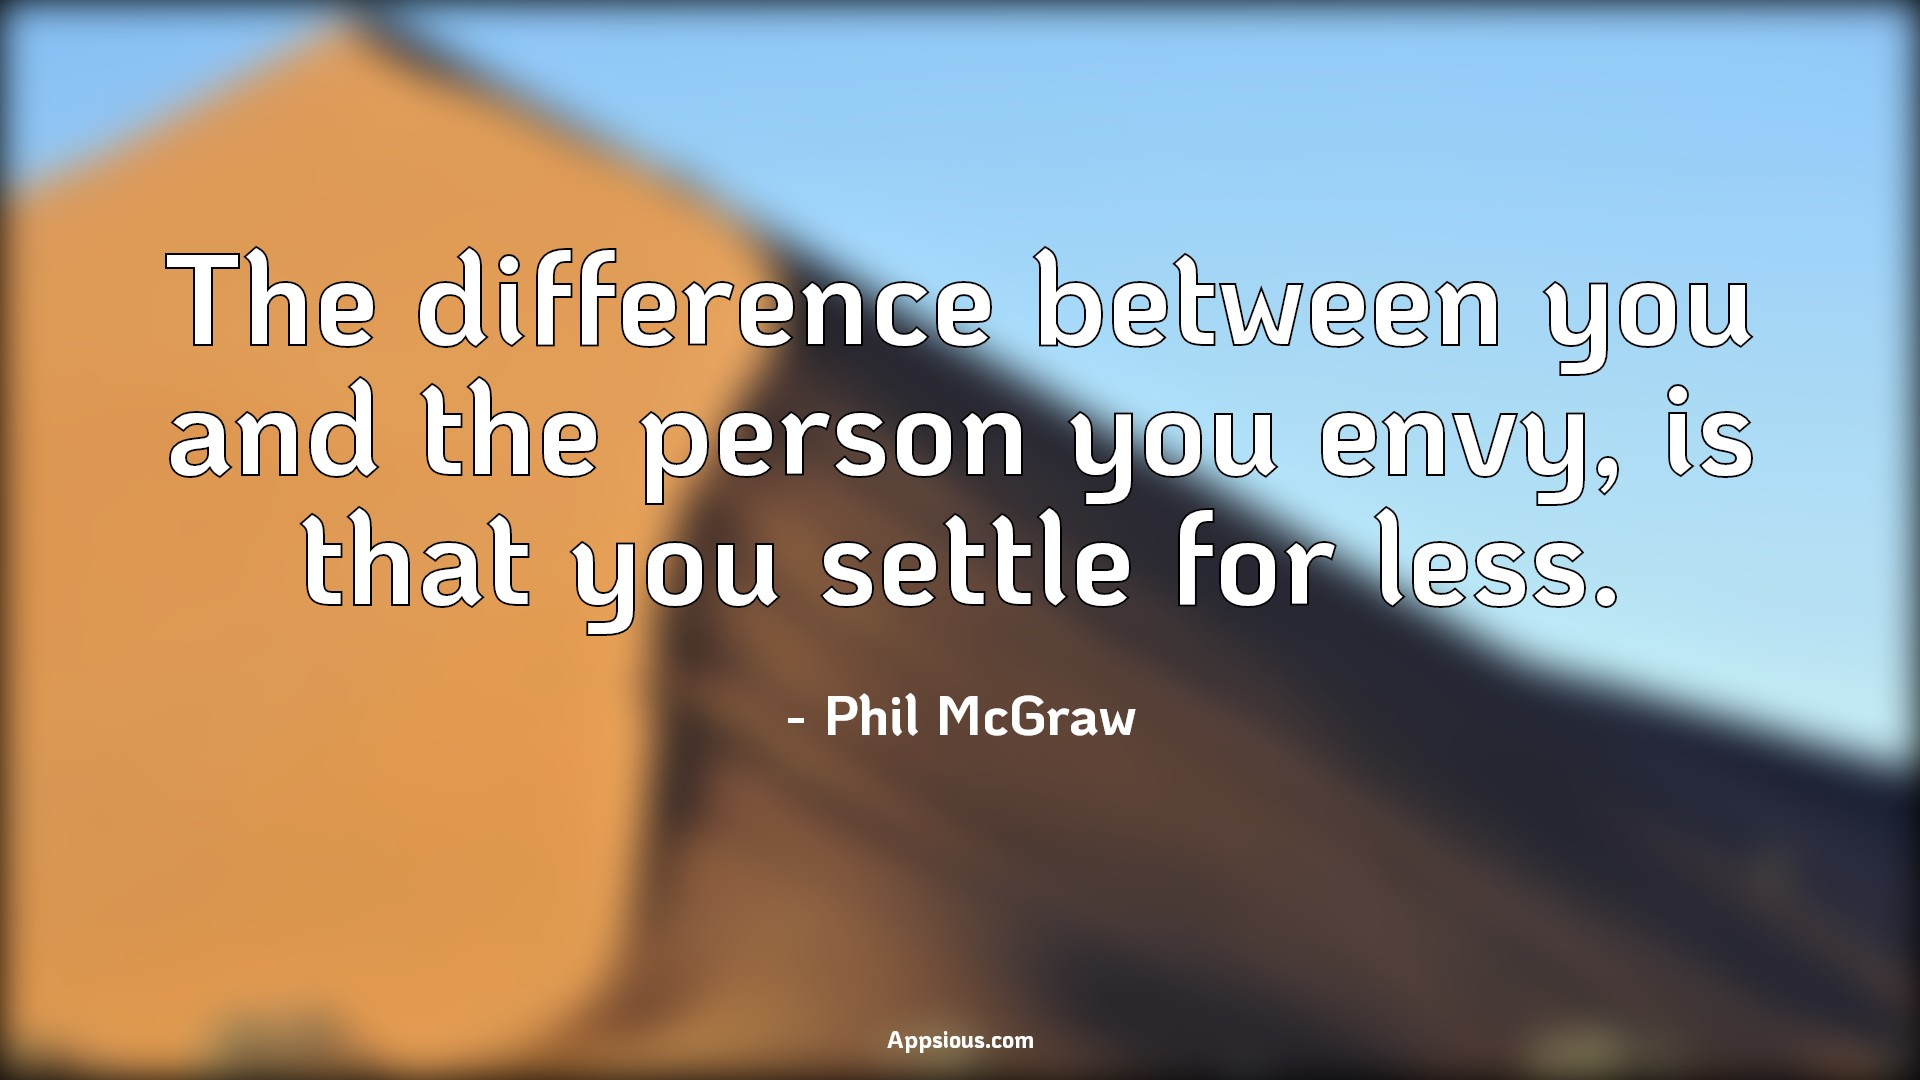 The difference between you and the person you envy, is that you settle for less.